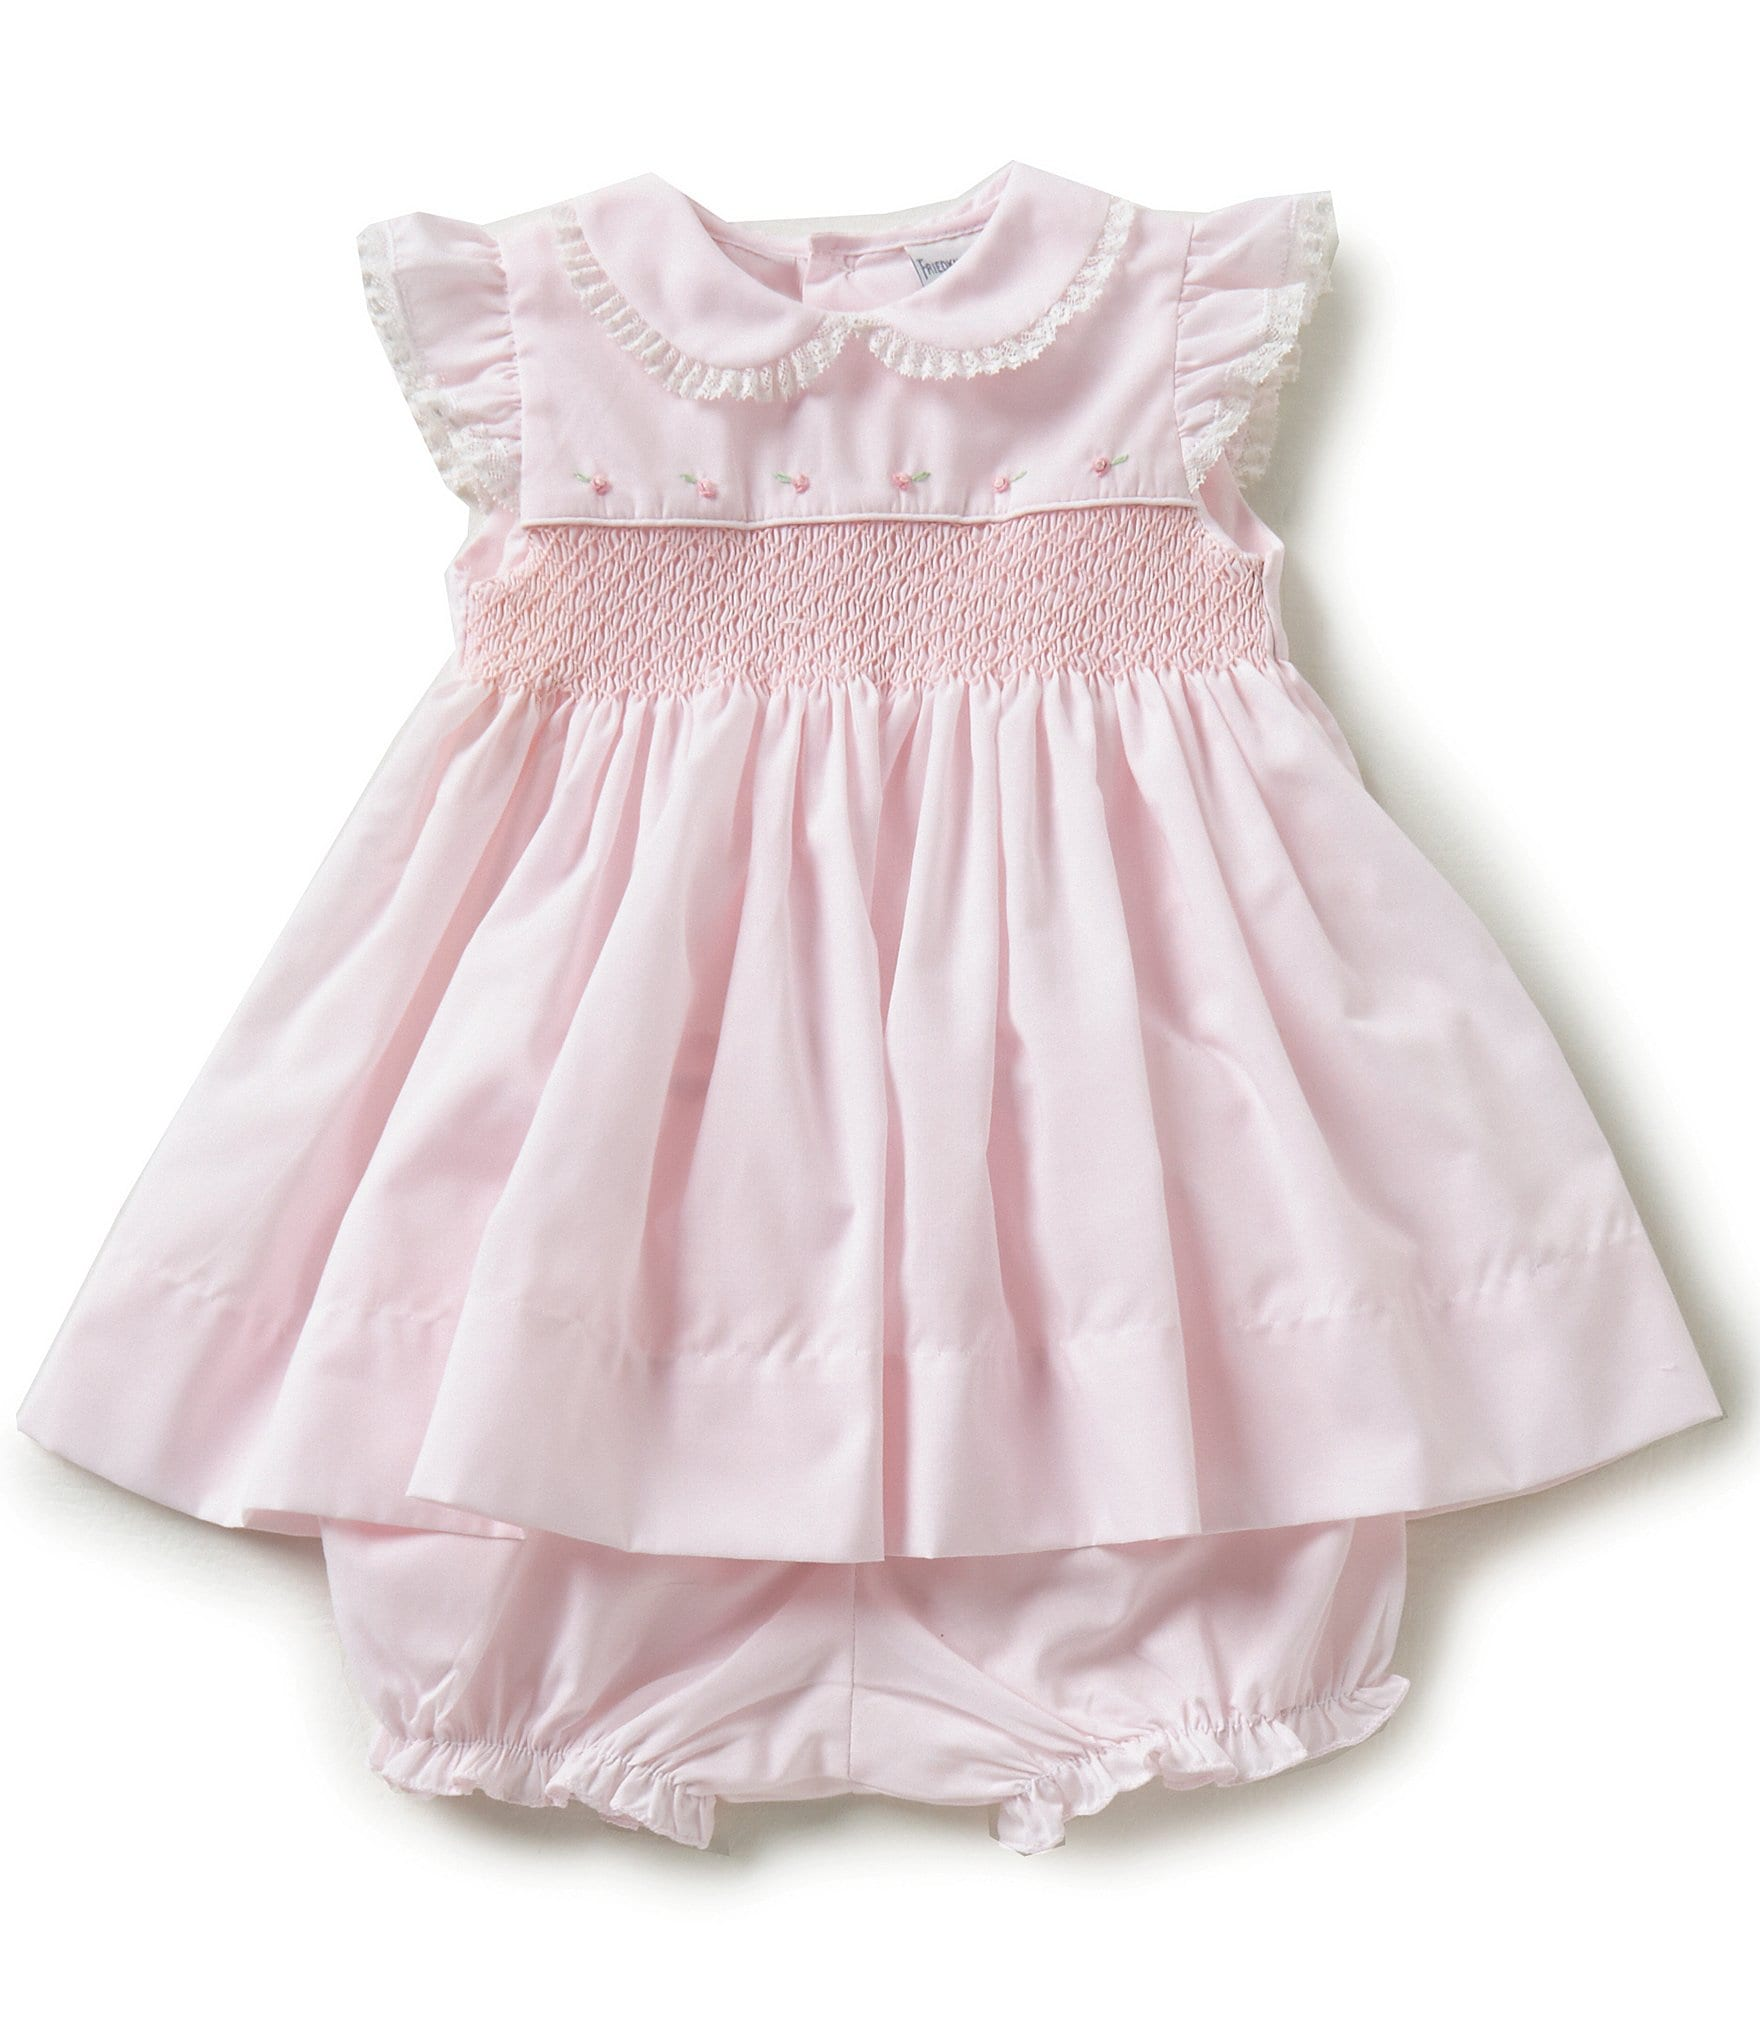 Tan Baby Girl Clothing